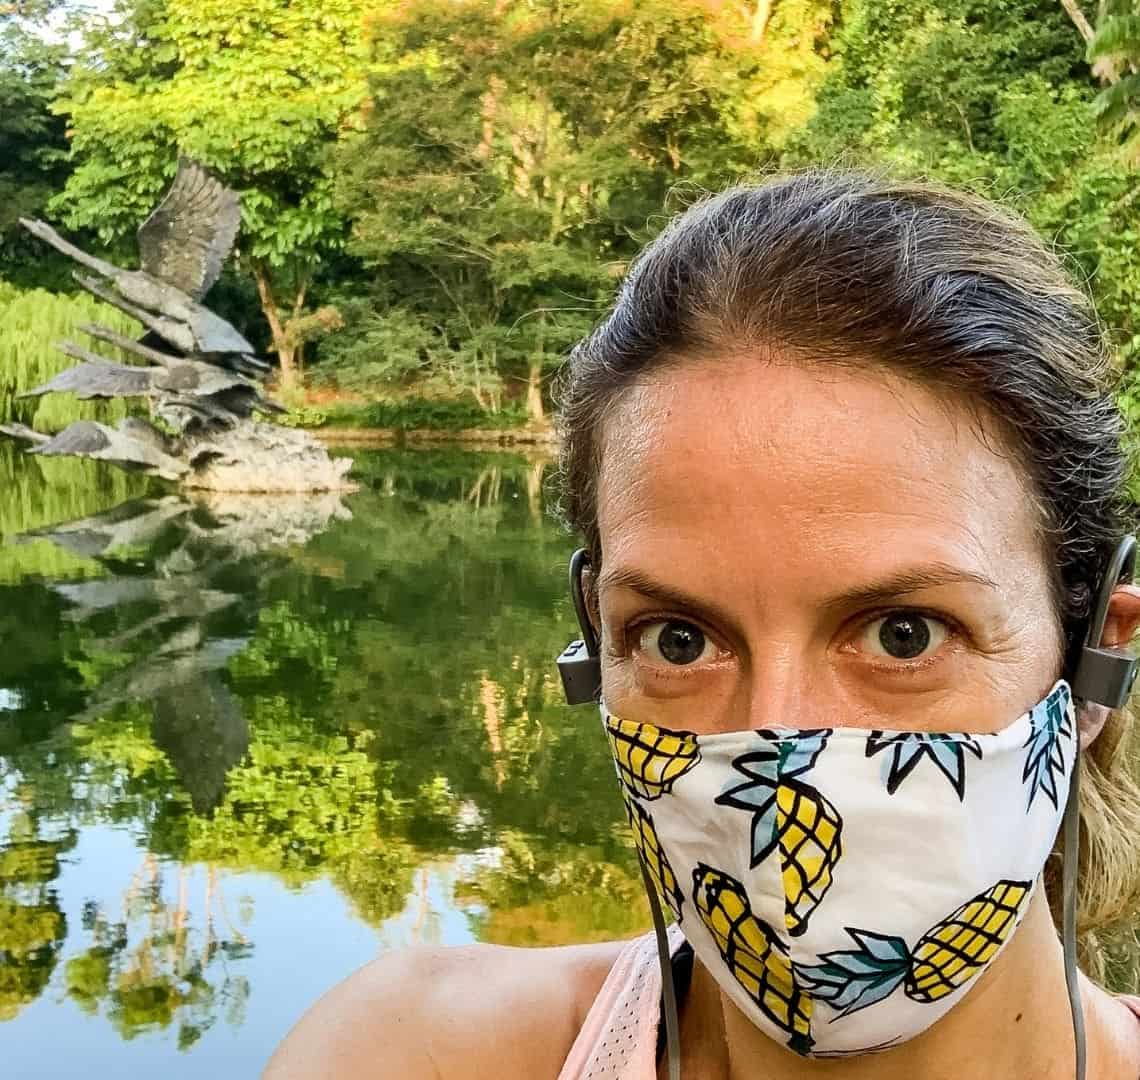 Selfie of me in the botanic gardens. I'm wearing a white mask with pineapples on it. Behind me is lots of greenery both real and reflected in a lake. There is a statue of three swans taking flight in the middle of the lake.